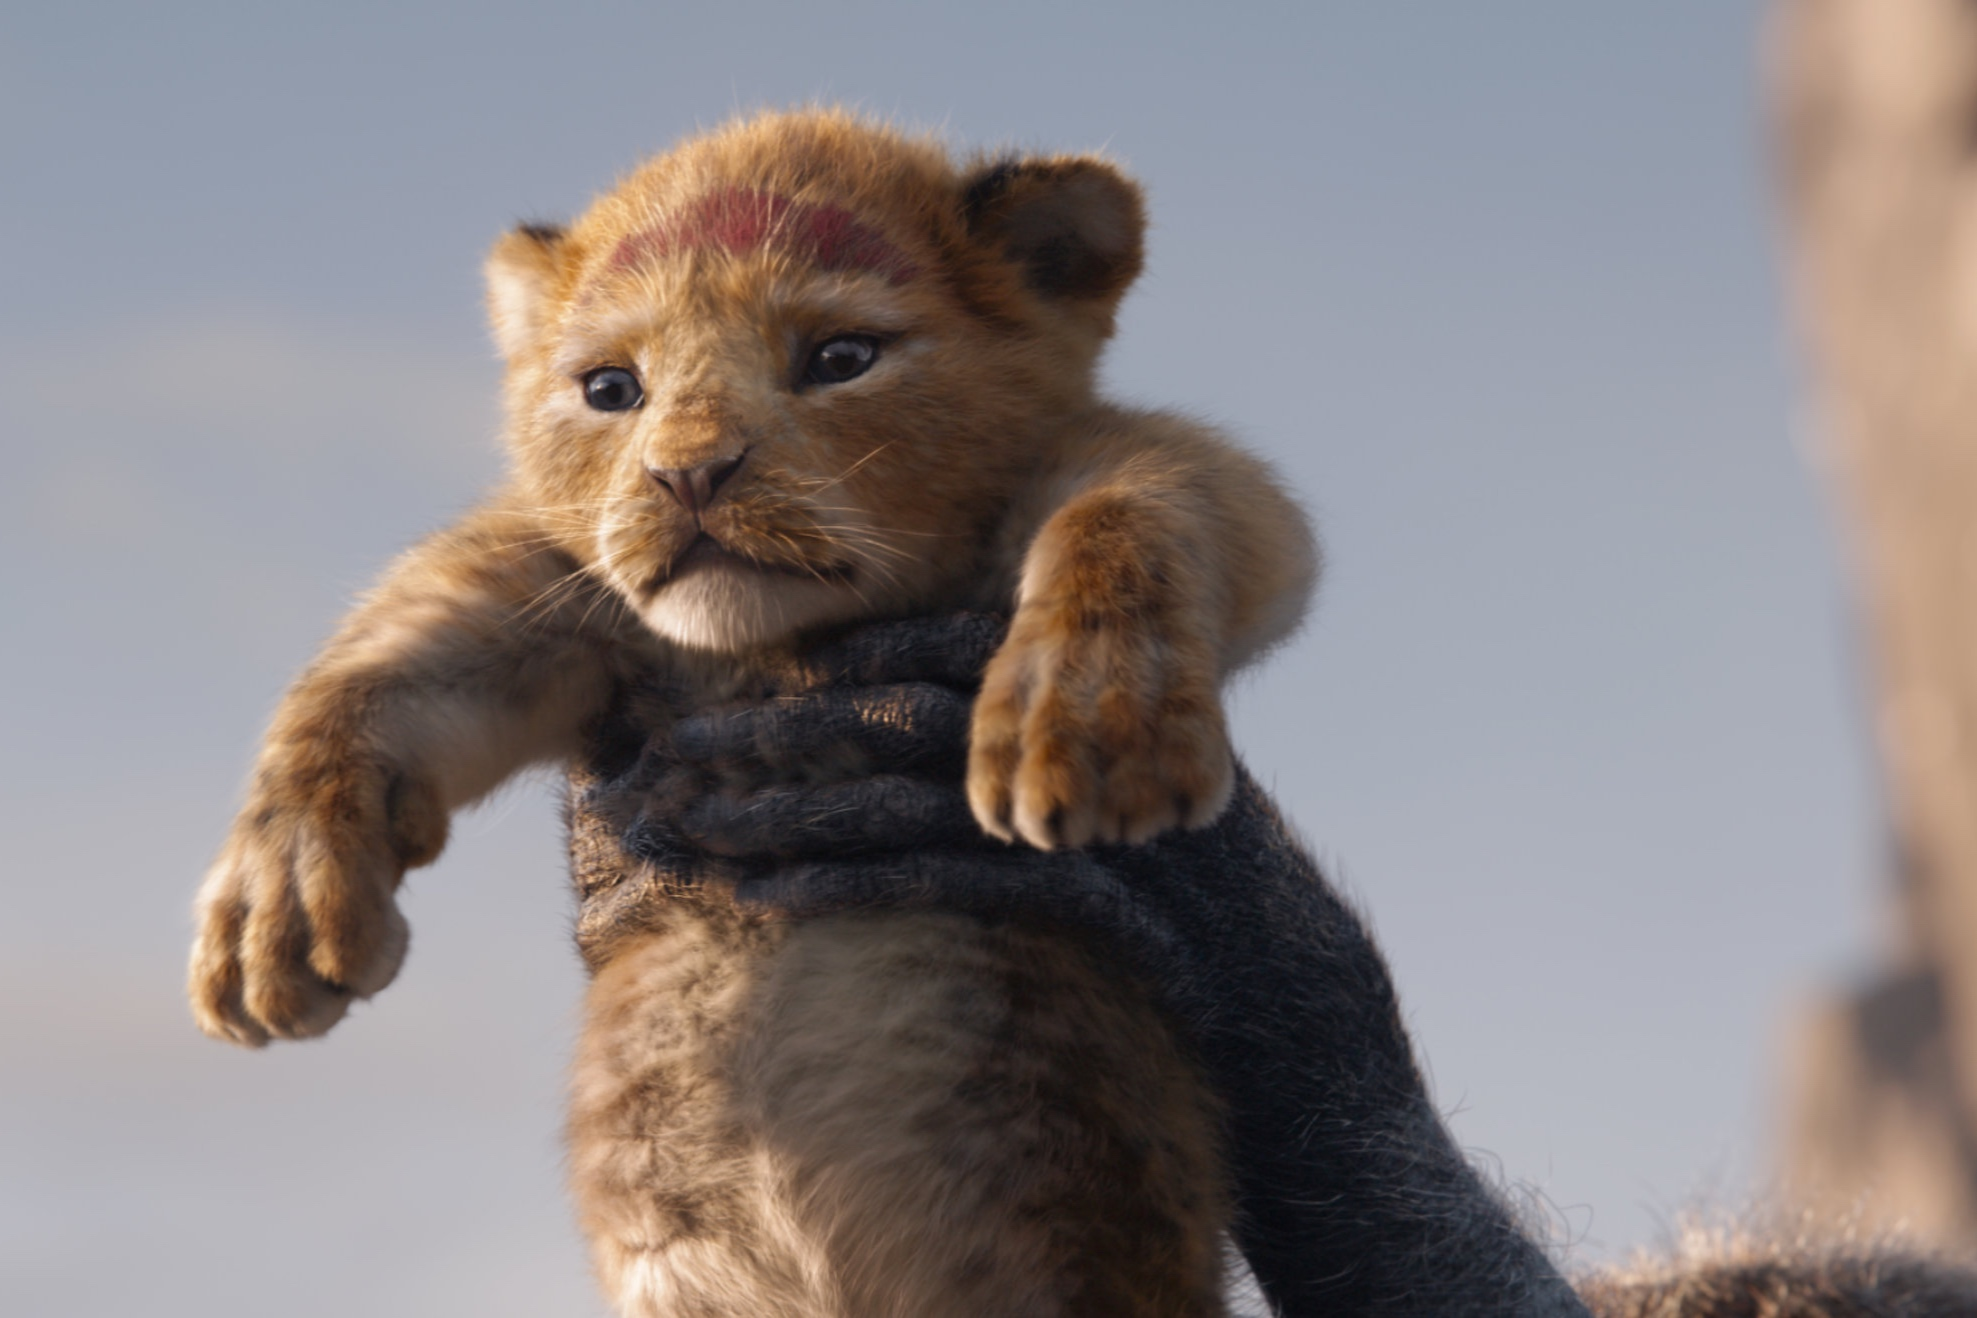 Baby Simba. I just can't take the cuteness.